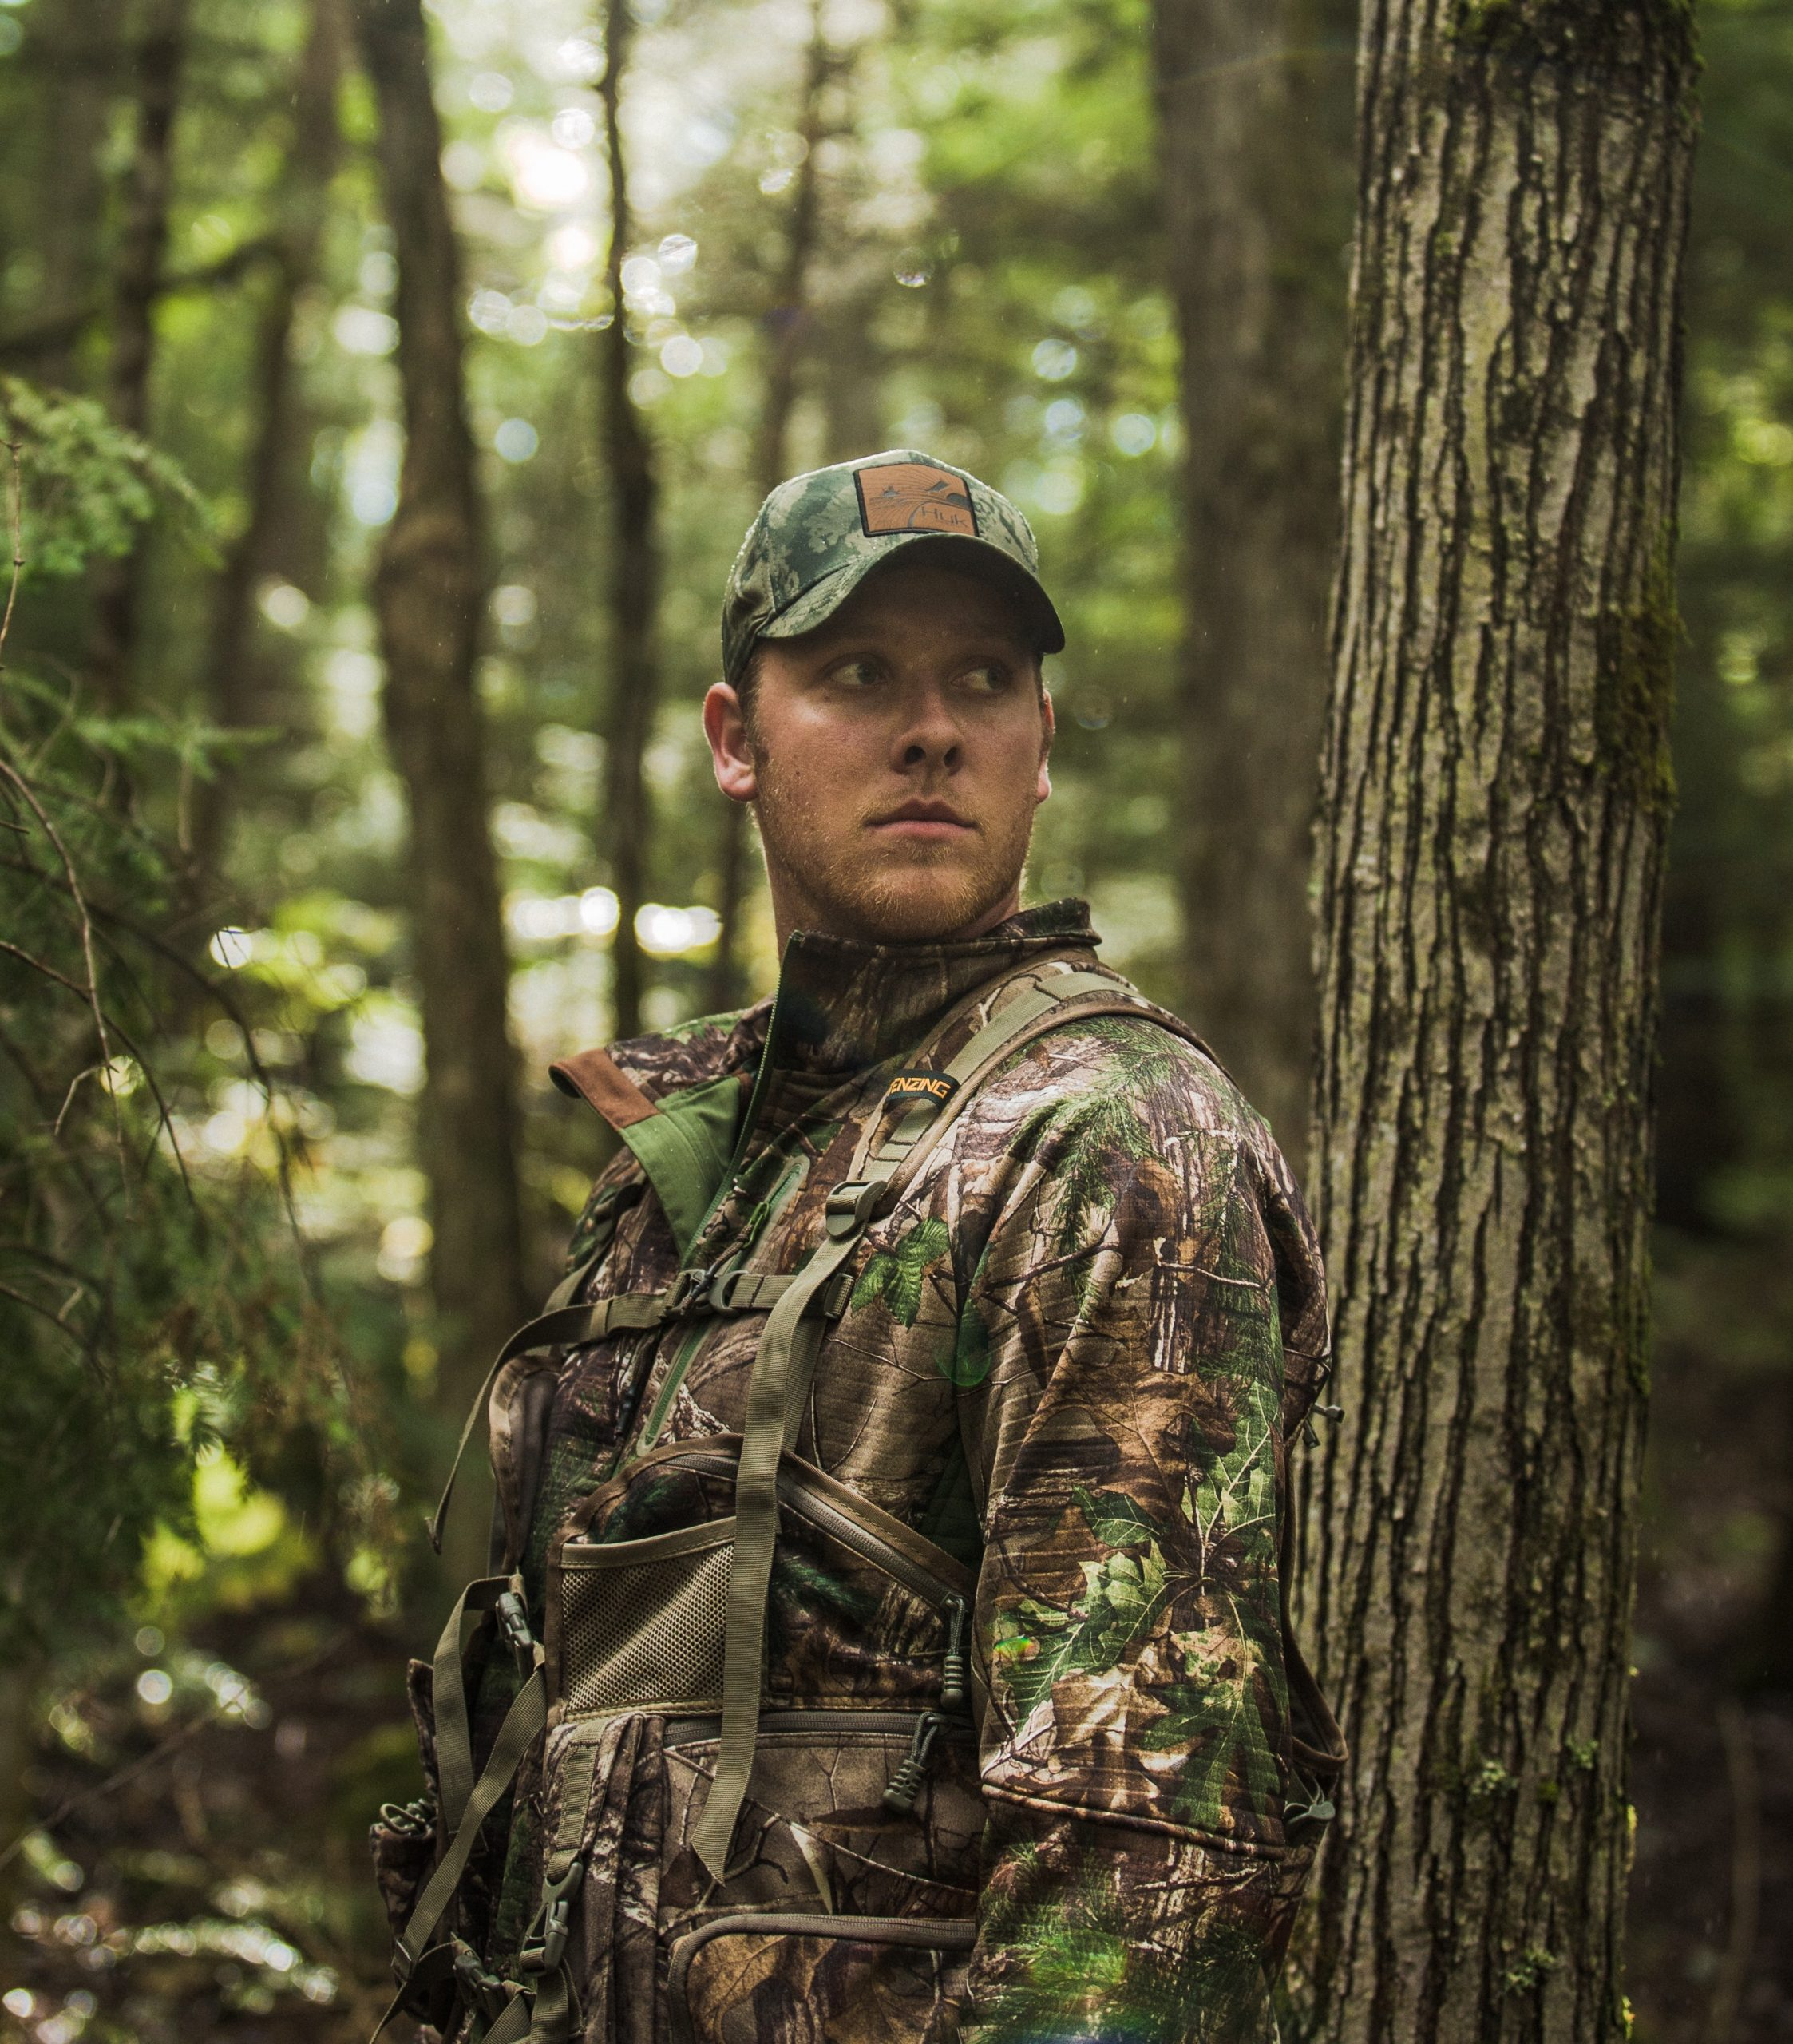 In a lush green forest a hunter in camouflage gear looks to the right.